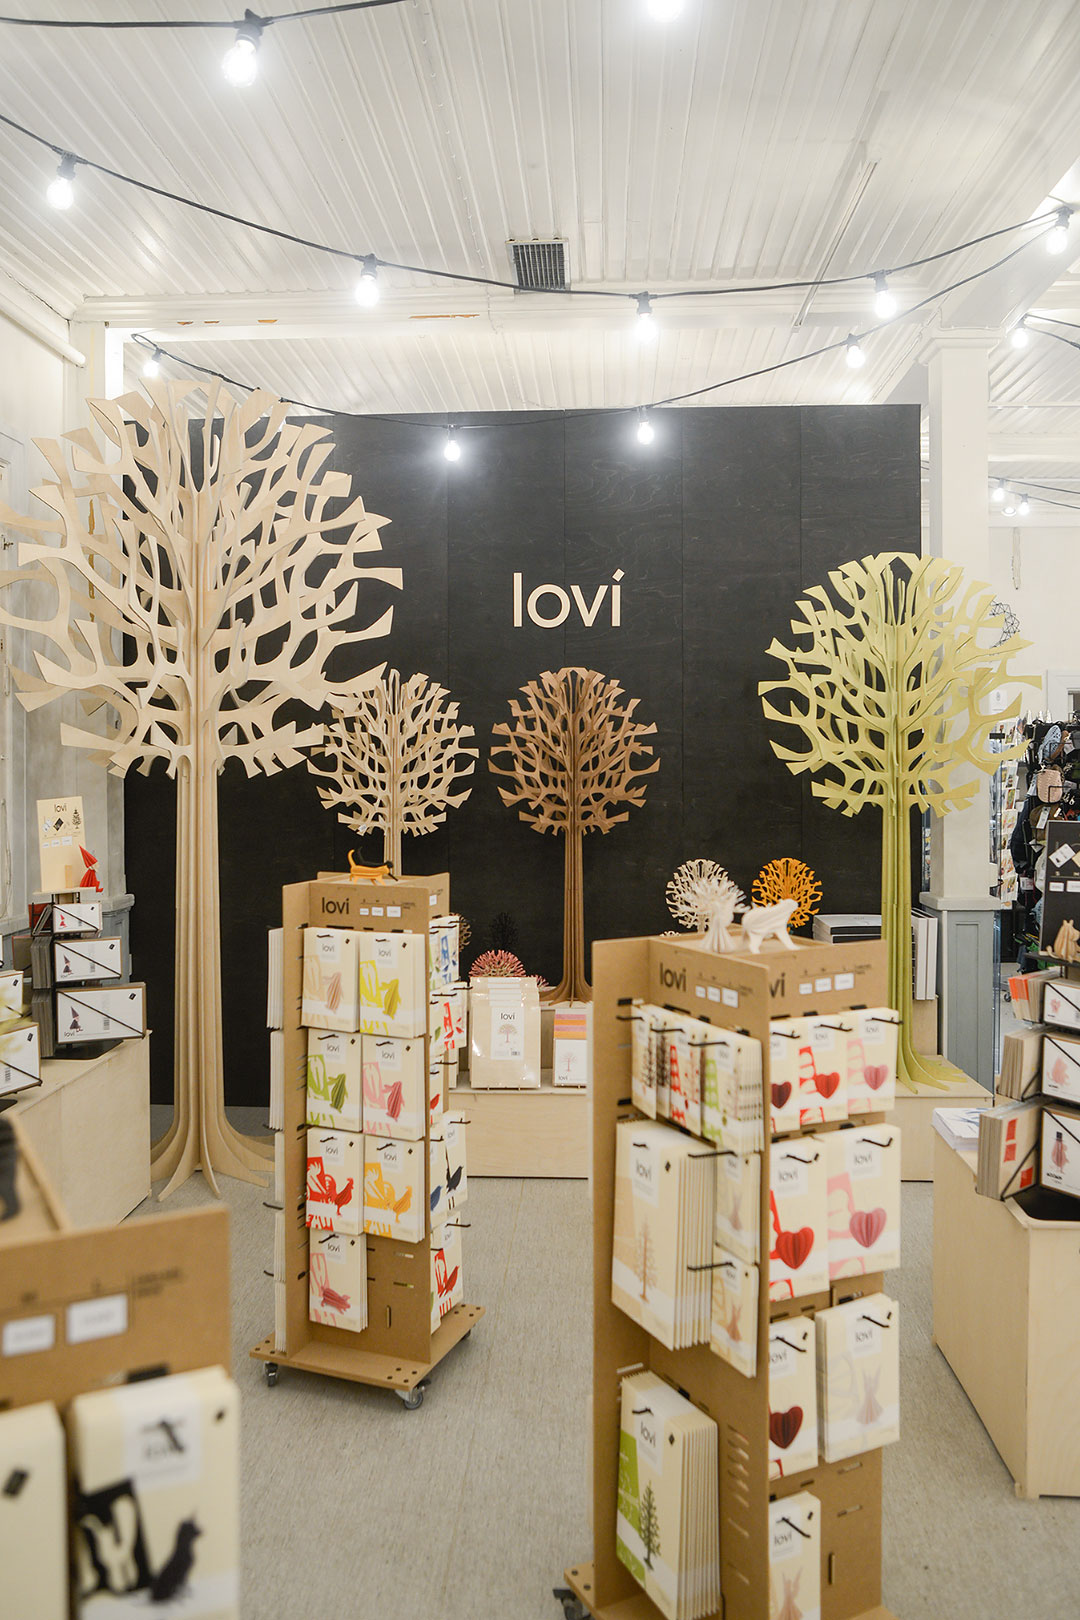 Lovi Outlet at Taito Shop Maakari